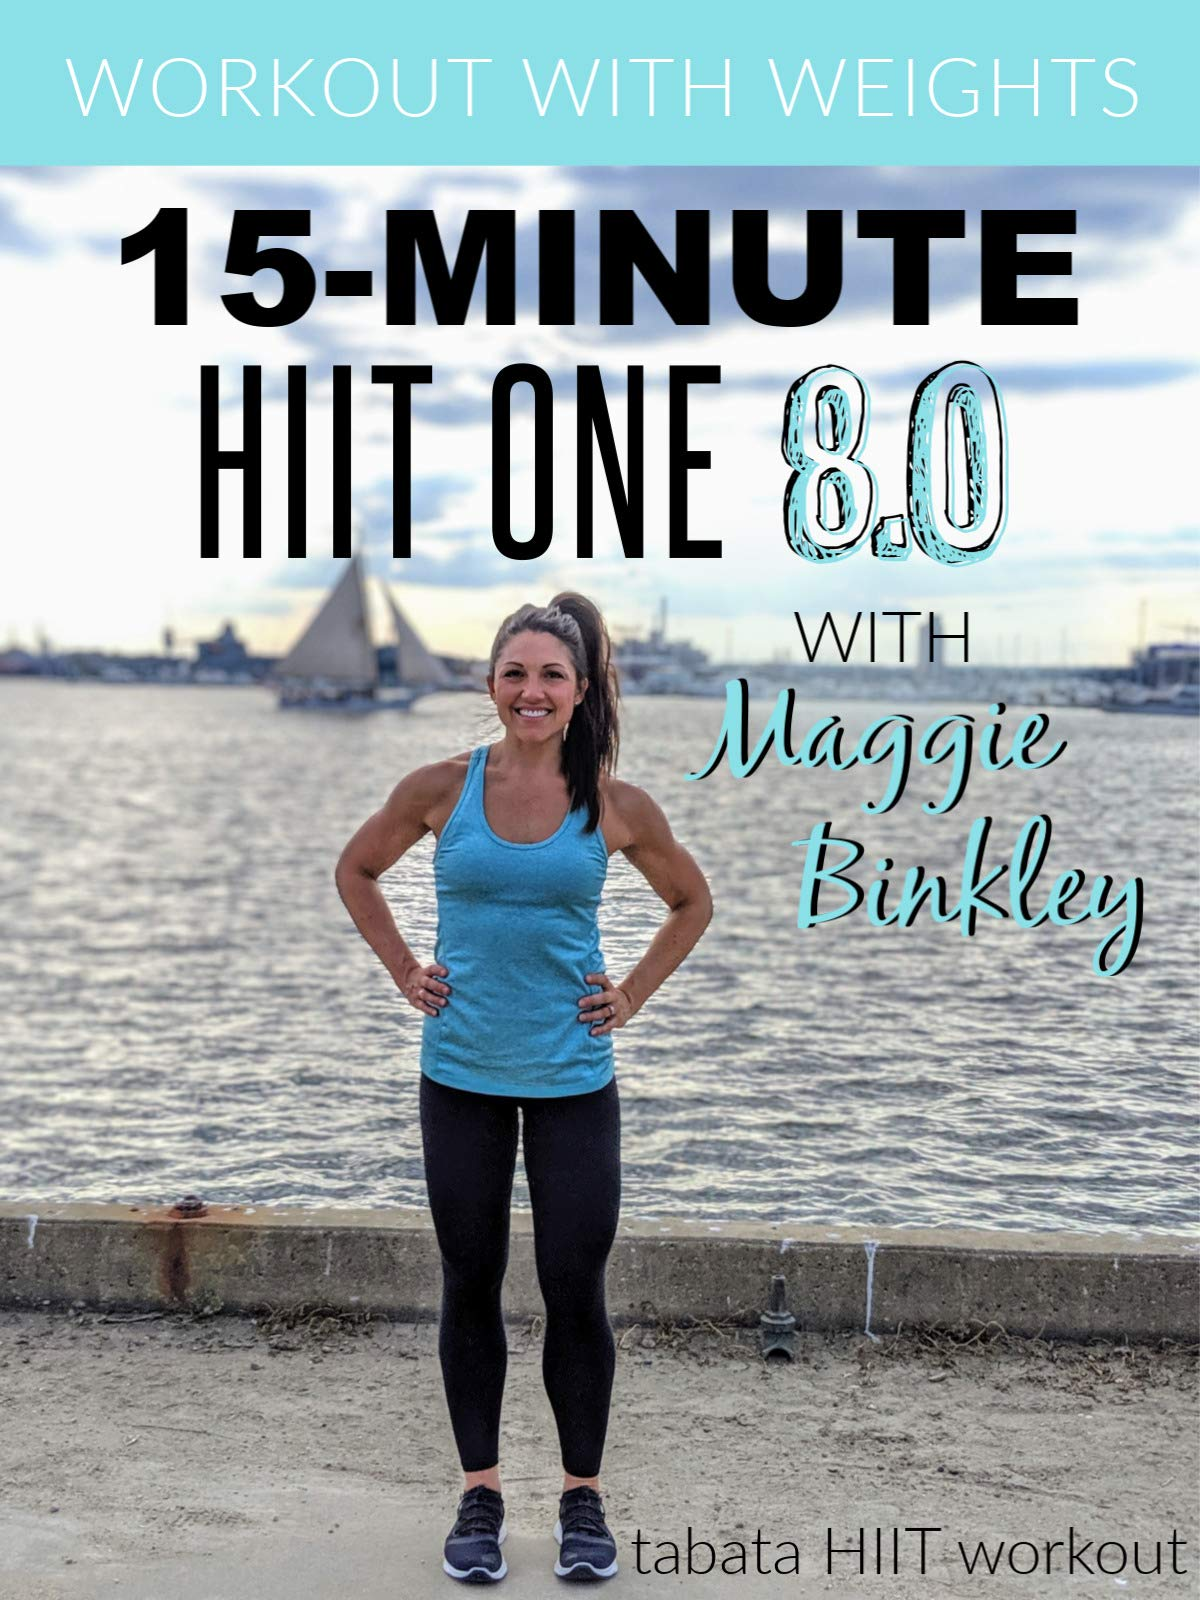 15-Minute HIIT One 8.0 (tabata workout with weights)